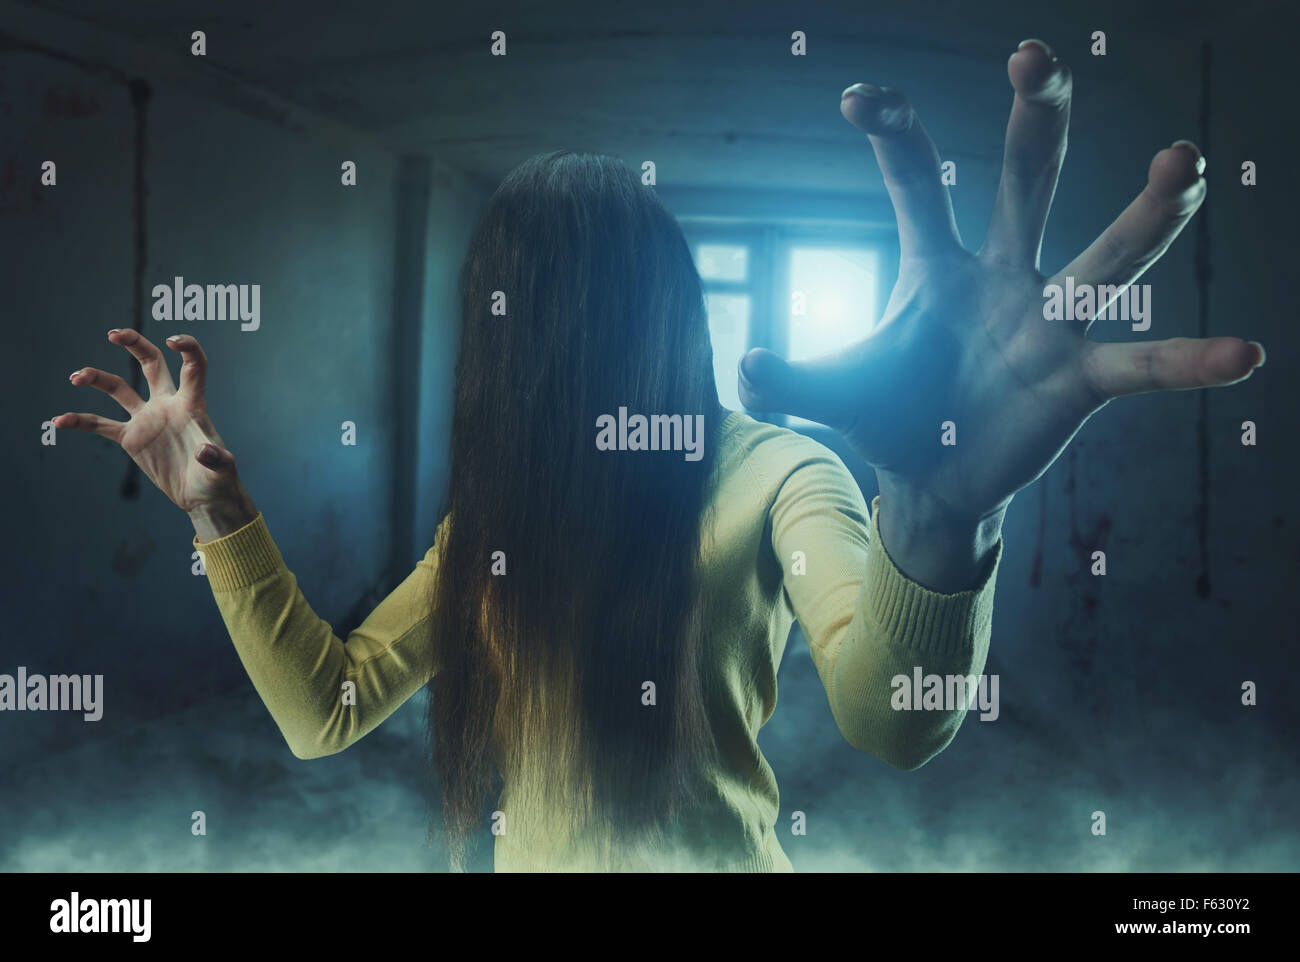 Zombie girl with long hair in her face in an abandoned building - Stock Image